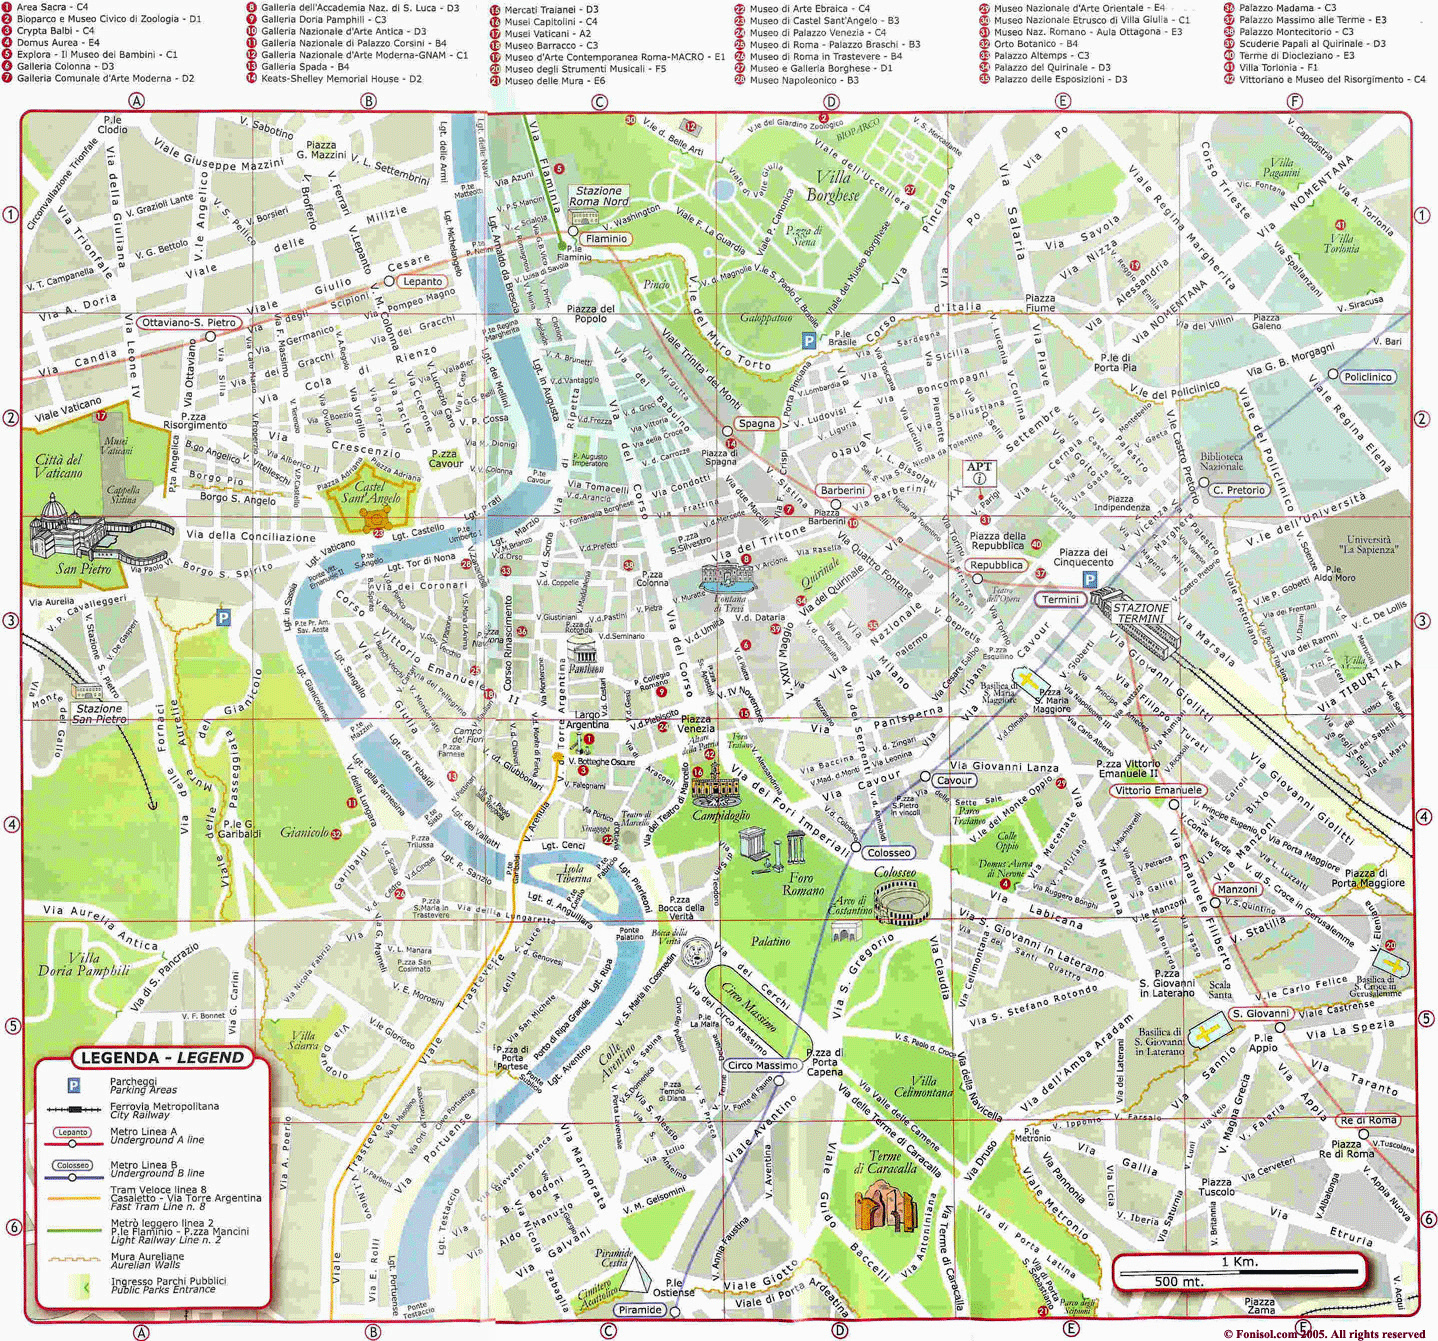 Large Detailed Map Of Rome City Rome City Large Detailed